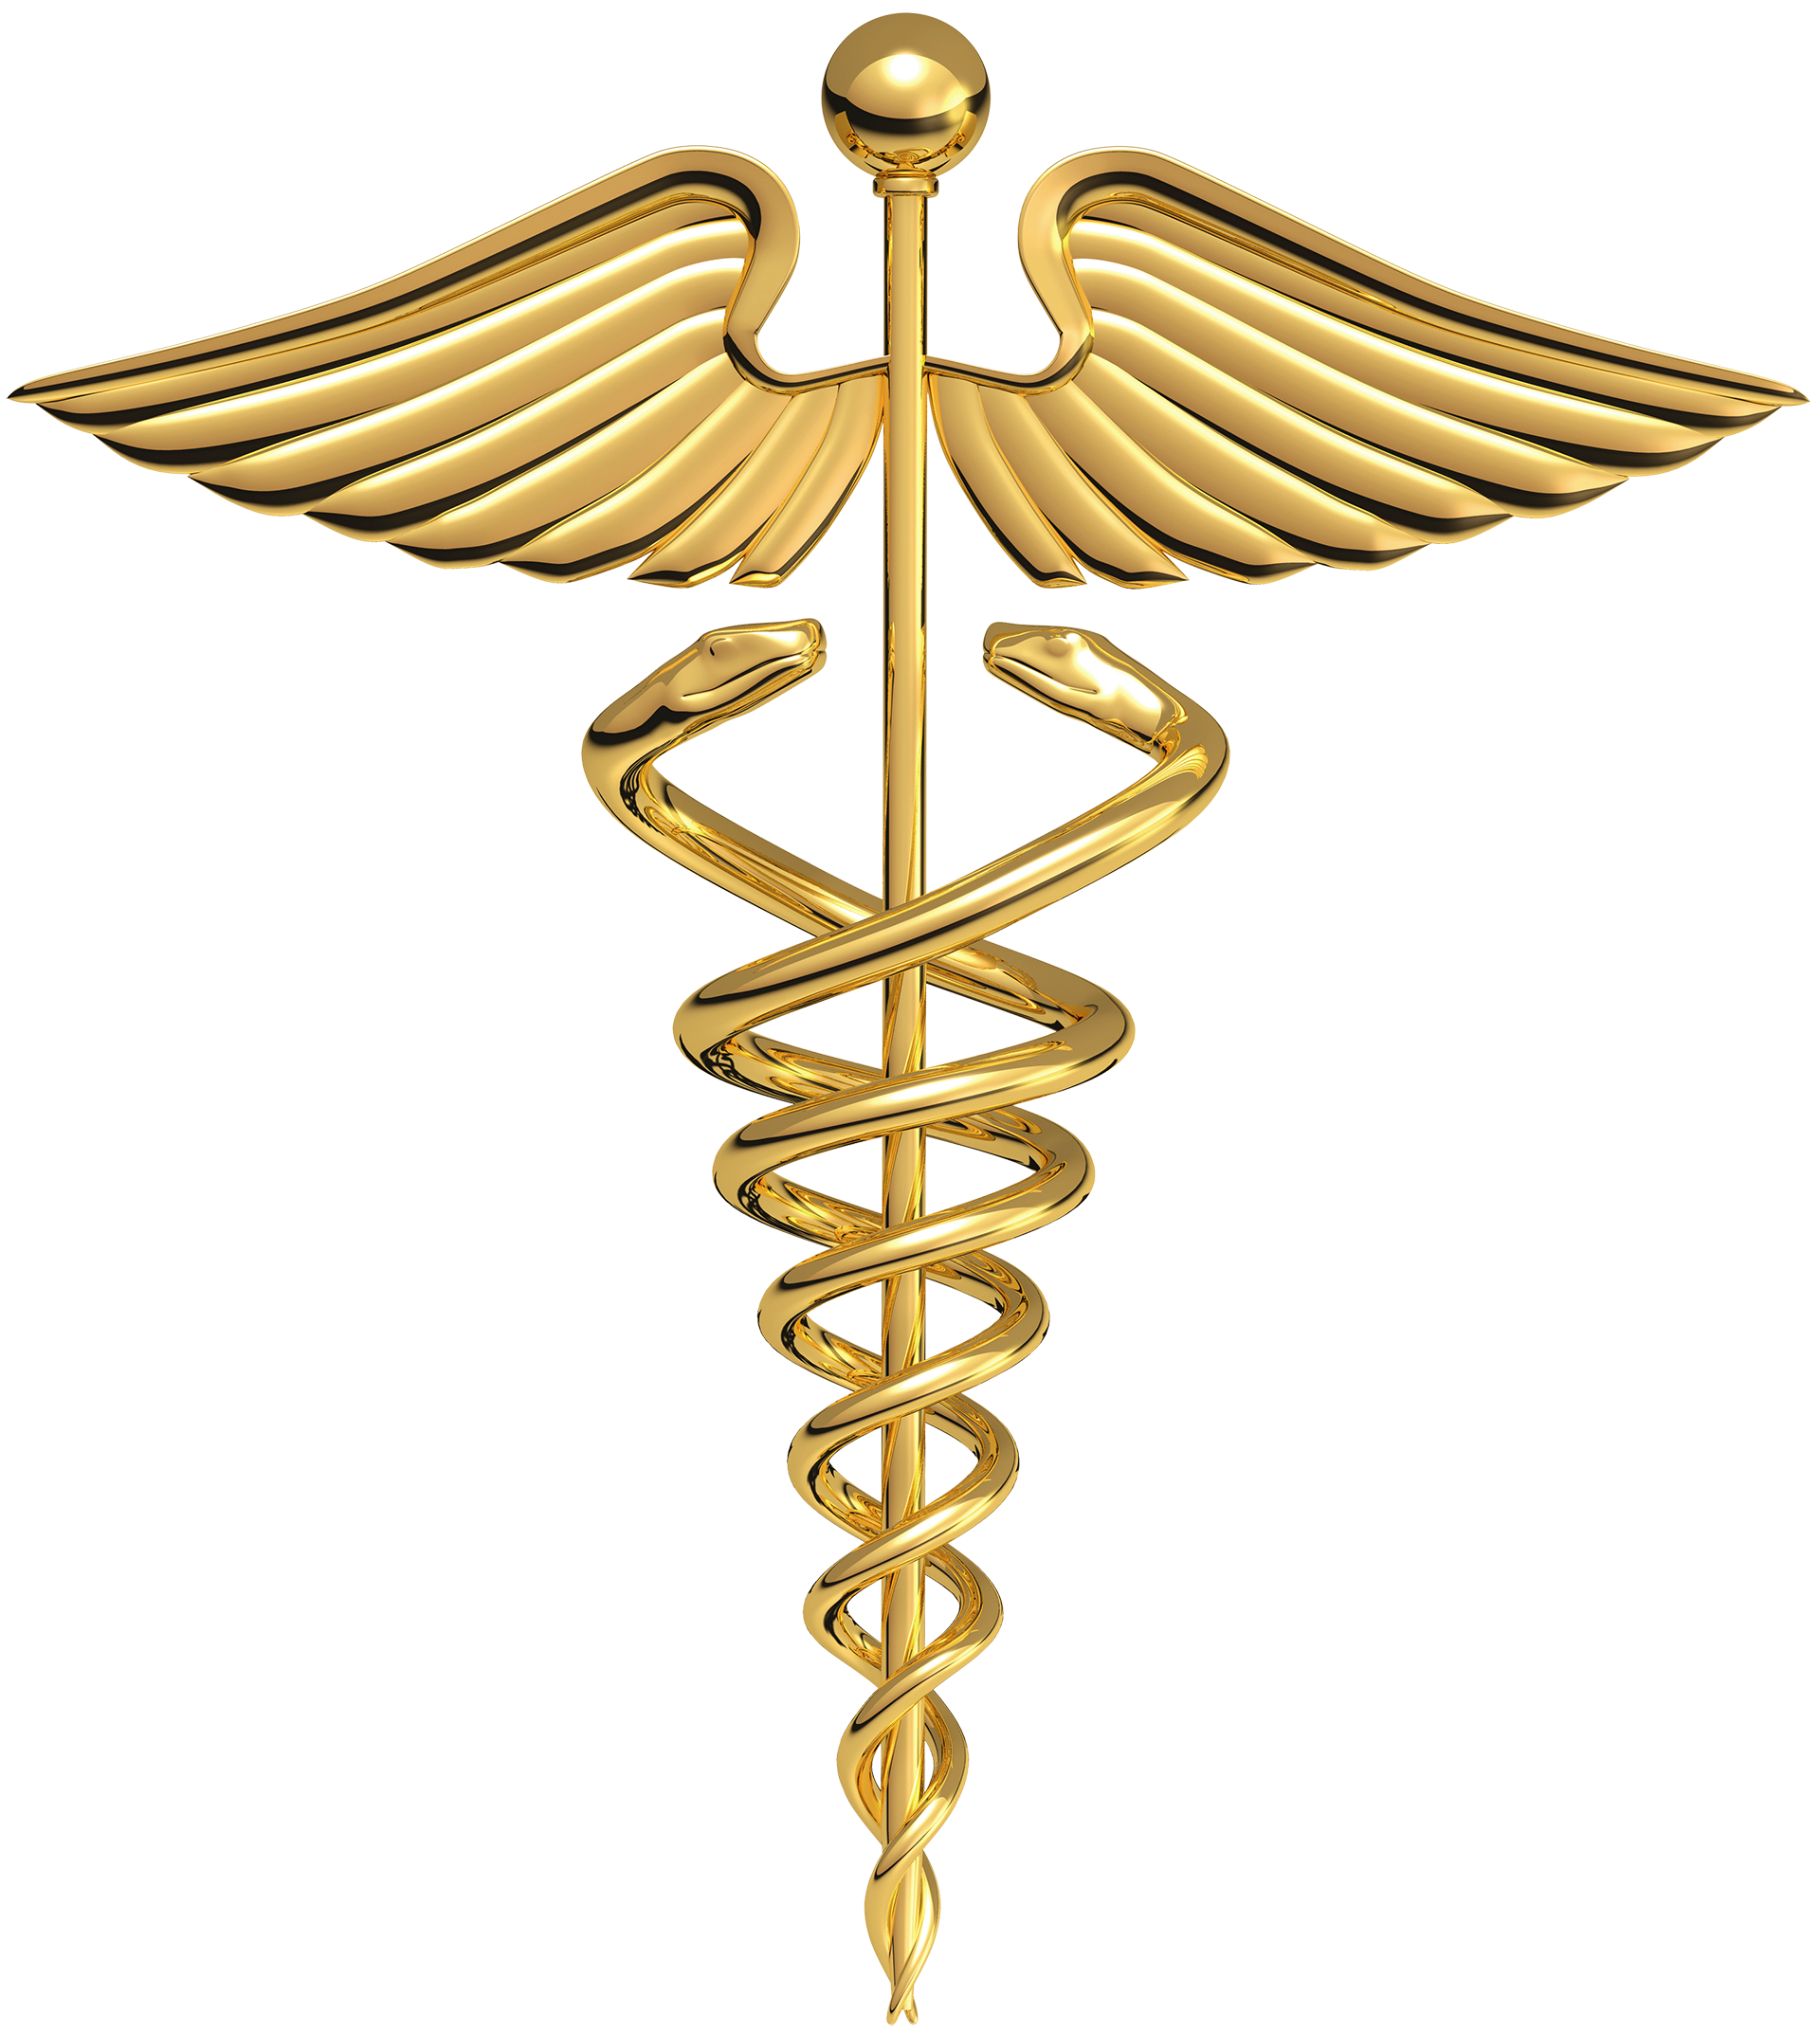 Caduceus - HEALTH - Messenger of the gods - The gods ARE NEUTRAL, SERIOUS, CRITICAL AND GOOD - COMPASSION - MERCY - BENEVOLENCE - HUMANENESS - GOD'S WILL - Most Compassionate, Most Merciful, Most Benevolent, Most Humane - BE HUMANE - SEEK THE TRUTH - SEEK JUSTICE - BE KIND - BE GENTLE - DO NO HARM - DO NOT HATE - DO NOT FEAR - FEAR NOT - BE NOT AFRAID - CAUSE NO PAIN - BE AS PAINLESS AS POSSIBLE - CAUSE NO FEAR - DO NOT BE SCARY - DO NOT PUNISH - DO NOT MAKE THREATS - DO NOT BE COERCIVE - BE PERMISSIVE - BE TOLERANT - USE BIRTH CONTROL - PERMIT DIVORCE - EMPATHY IS CRITICAL - RESPECT FOR THE DIGNITY OF ALL HUMAN BEINGS IS CRITICAL - FREE UNIVERSAL HEALTH CARE - FREE UNIVERSAL EDUCATION - UNIVERSAL HOME OWNERSHIP